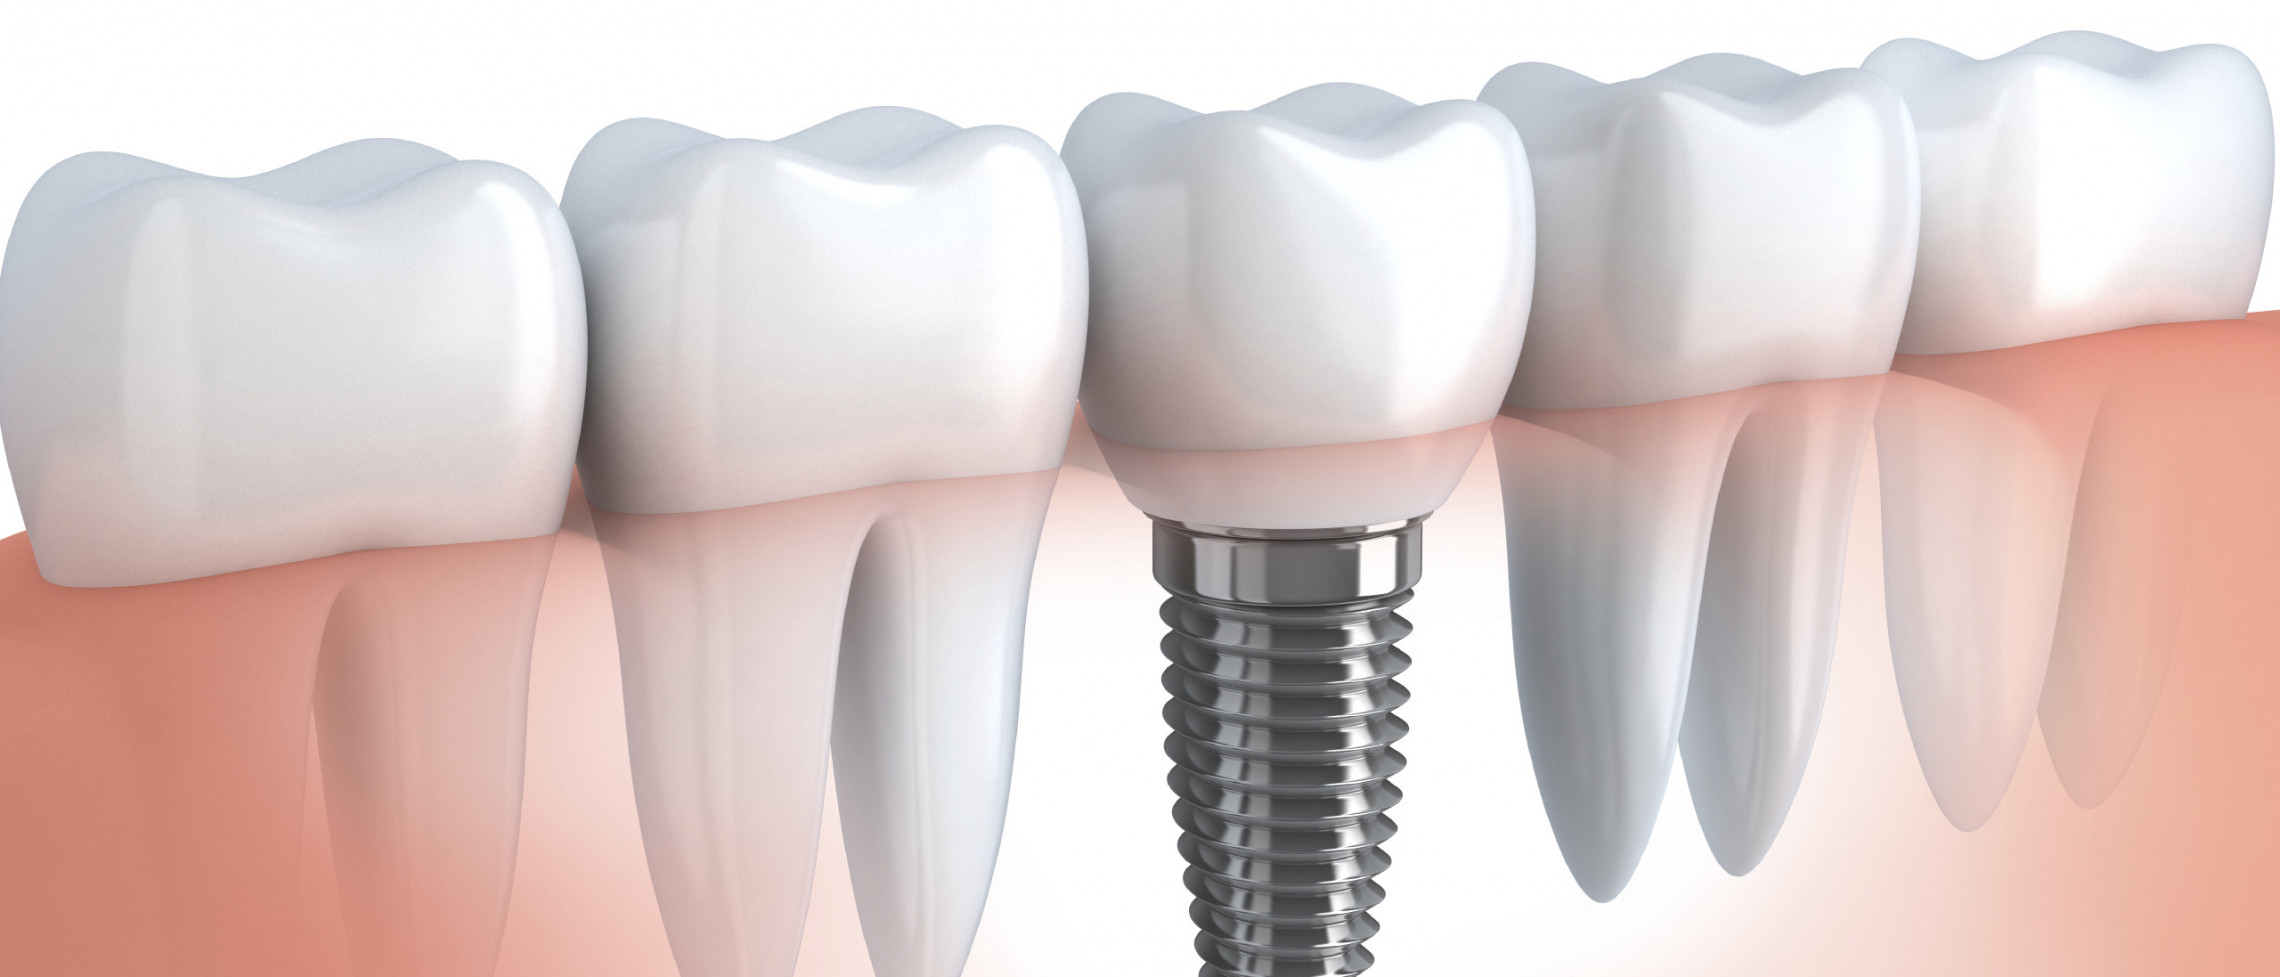 FAQ's & areas for patients to consider with Dental Implants & Sinus Lifts